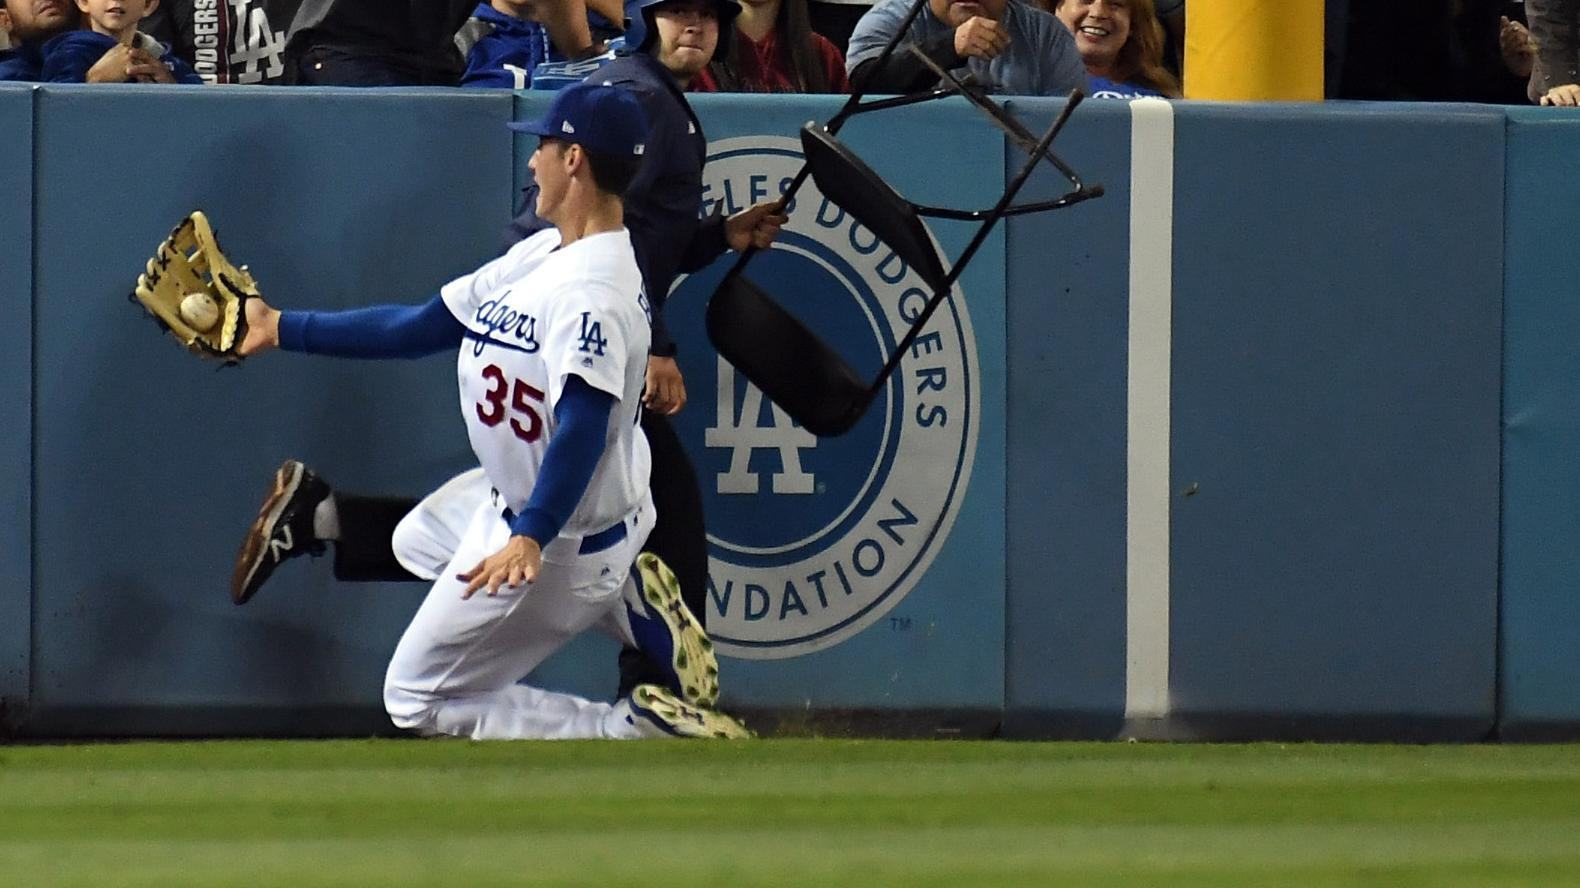 http://a.espncdn.com/media/motion/2017/0527/dm_170527_MLB_Dodgers_Bellinger_sliding_catch338/dm_170527_MLB_Dodgers_Bellinger_sliding_catch338.jpg